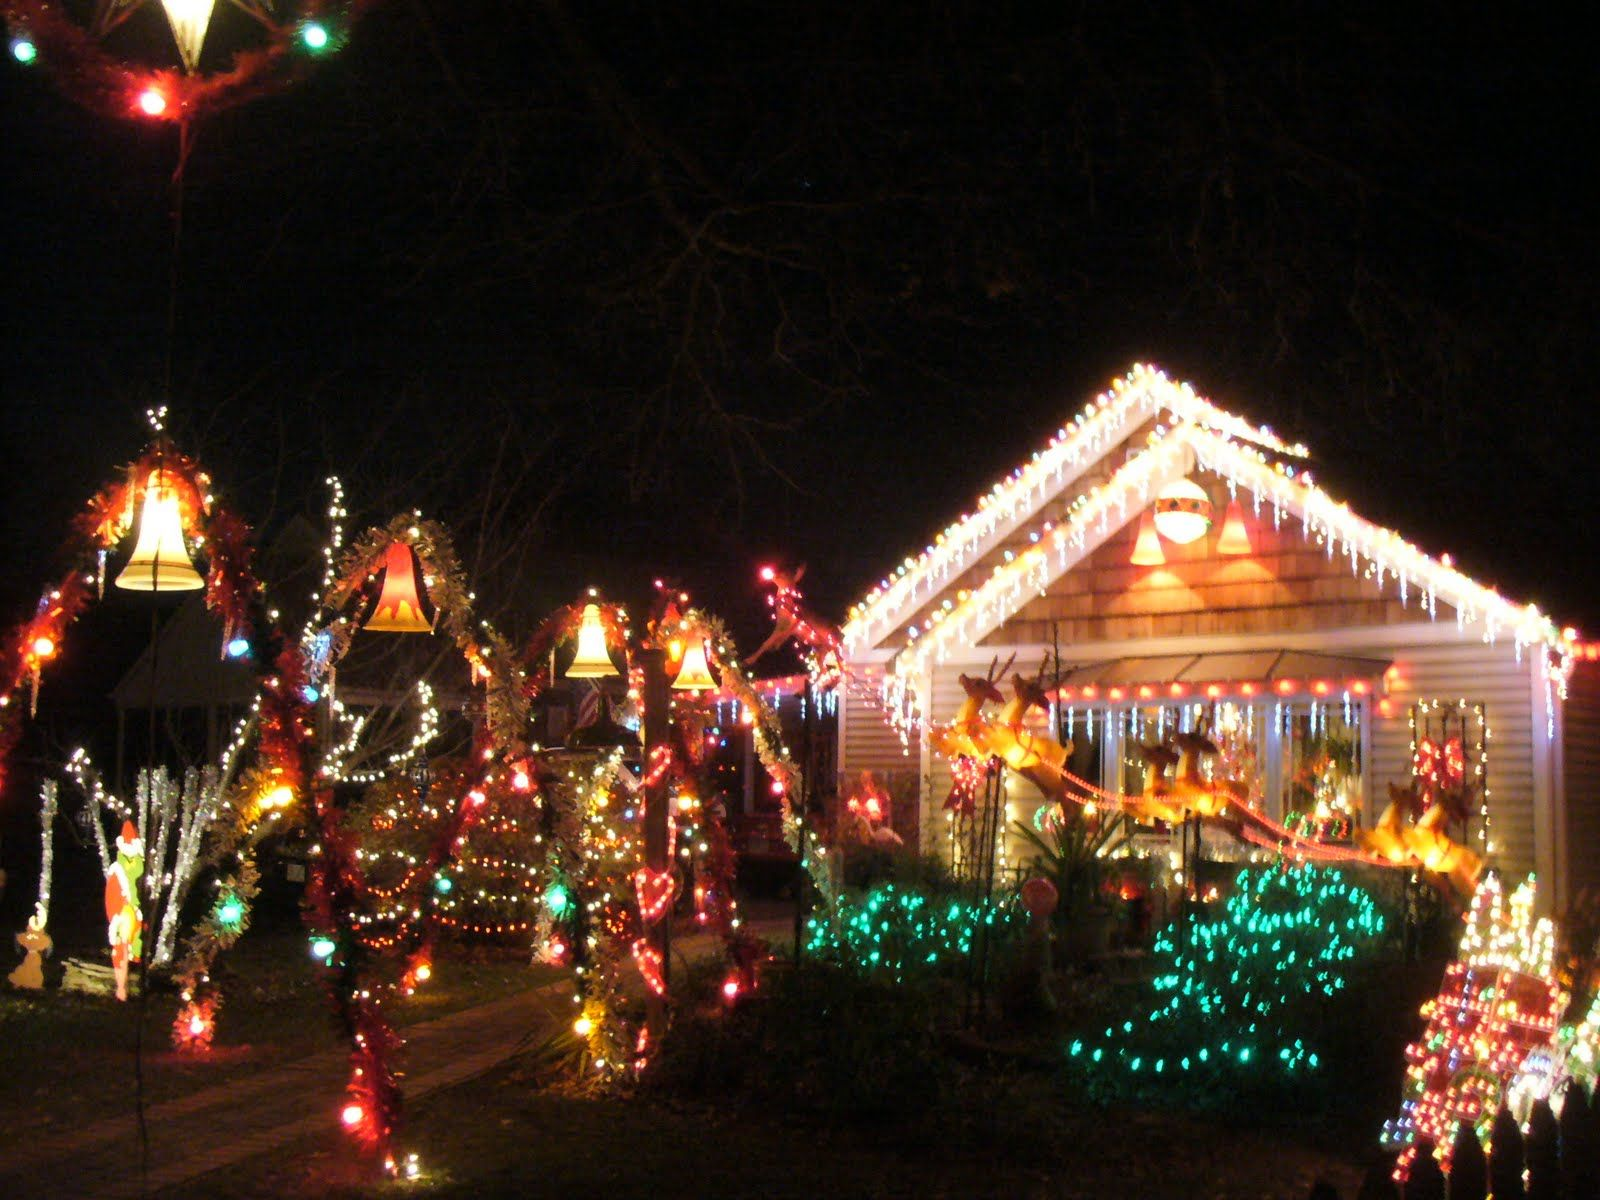 houses decorated for christmas Xmas lights Pinterest